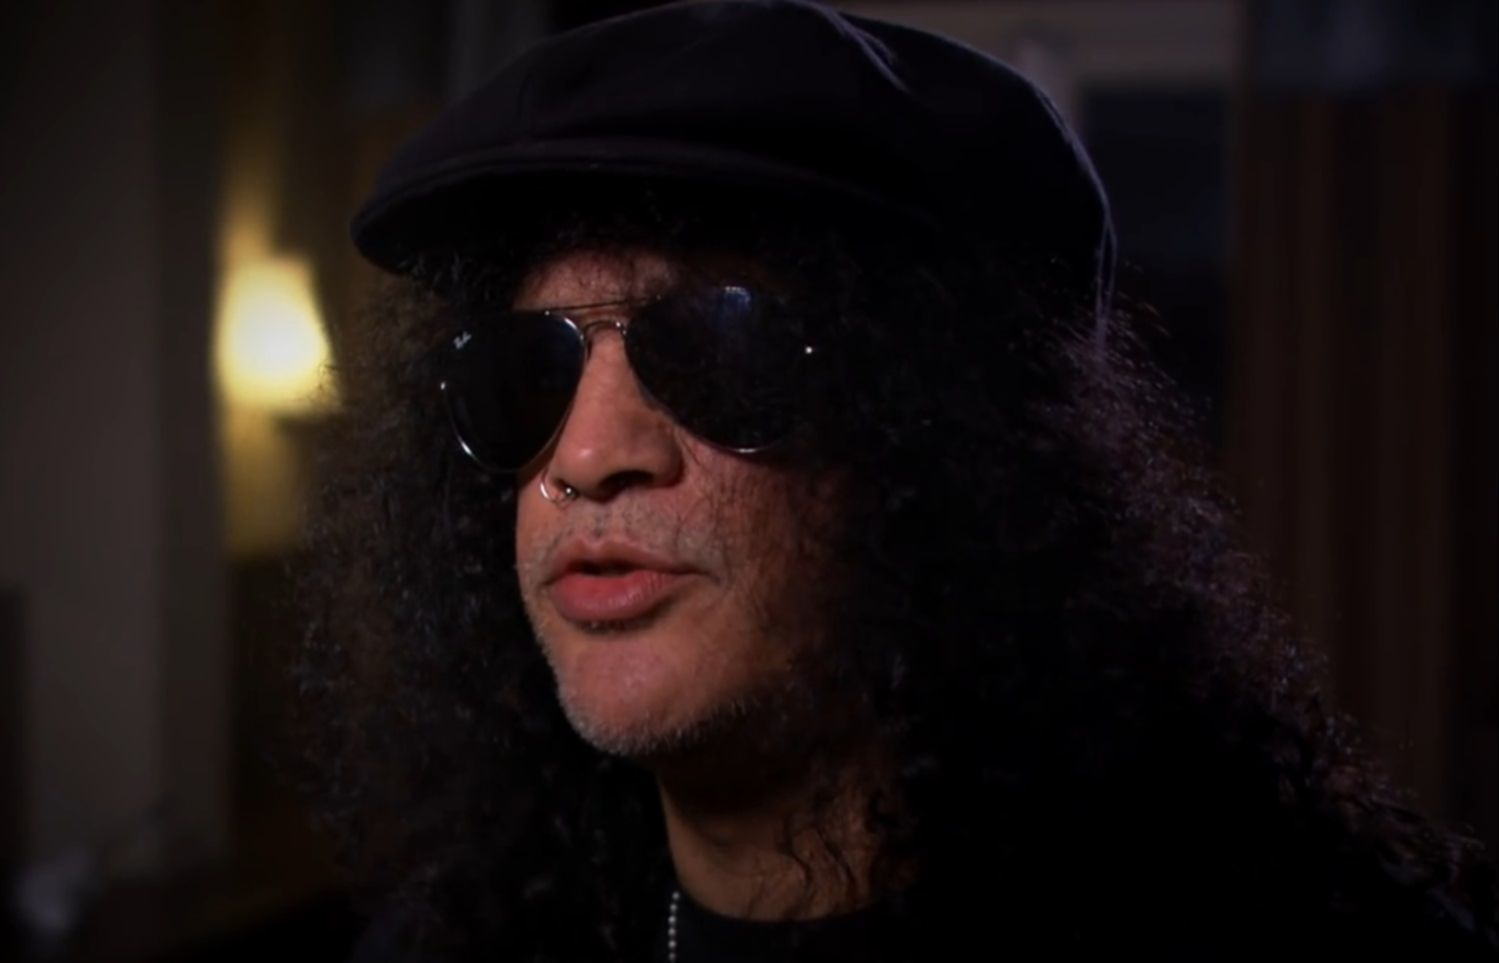 slash marshall doku still 2015